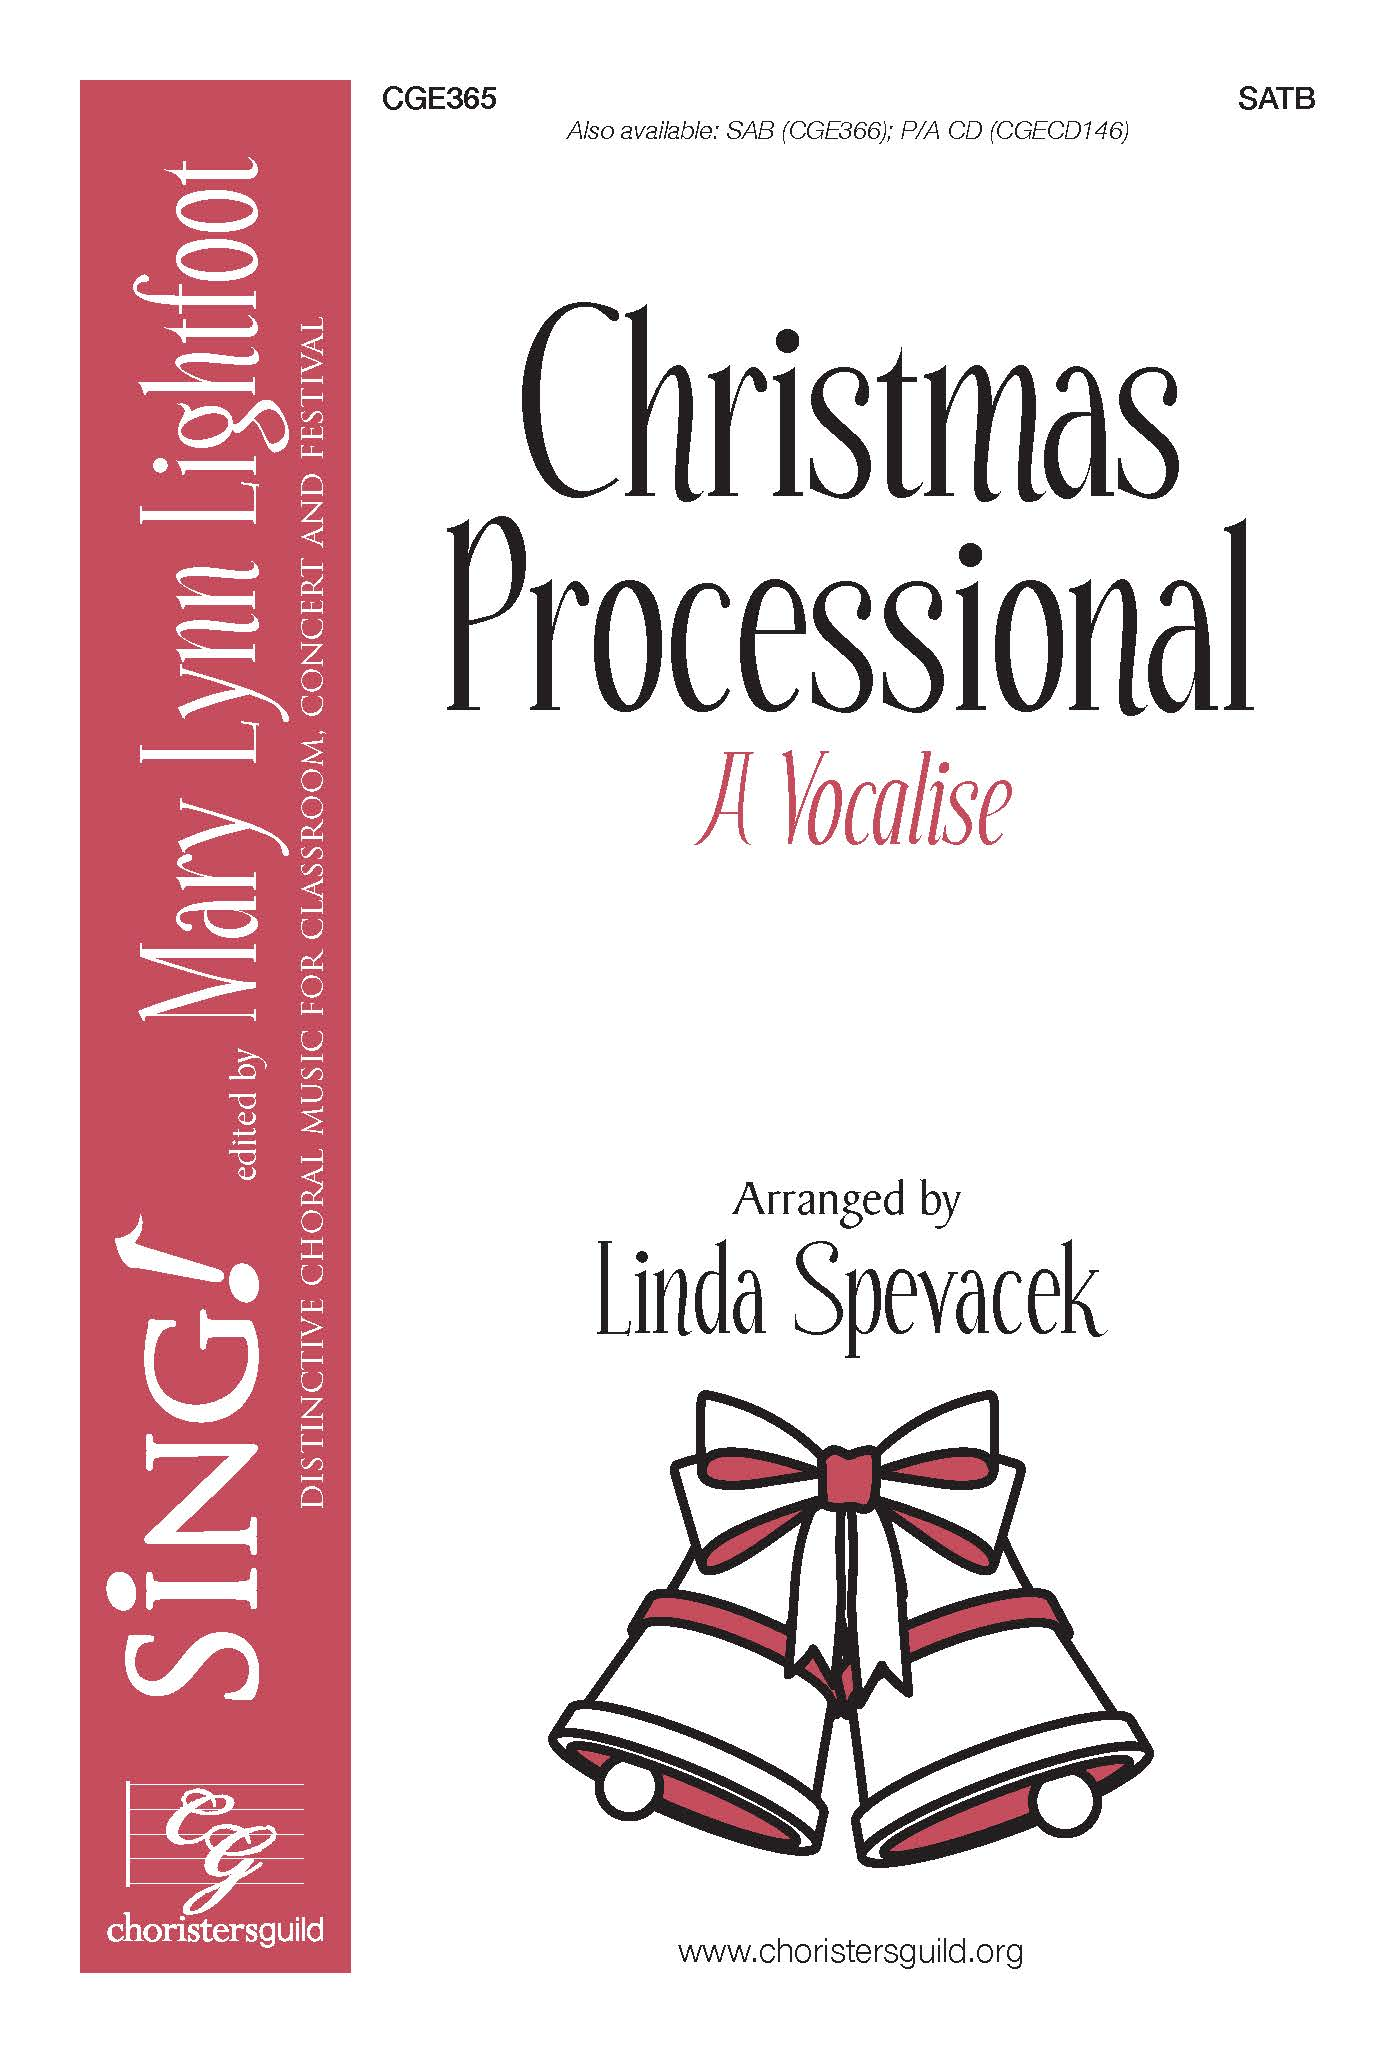 Christmas Processional (A Vocalise) - SATB